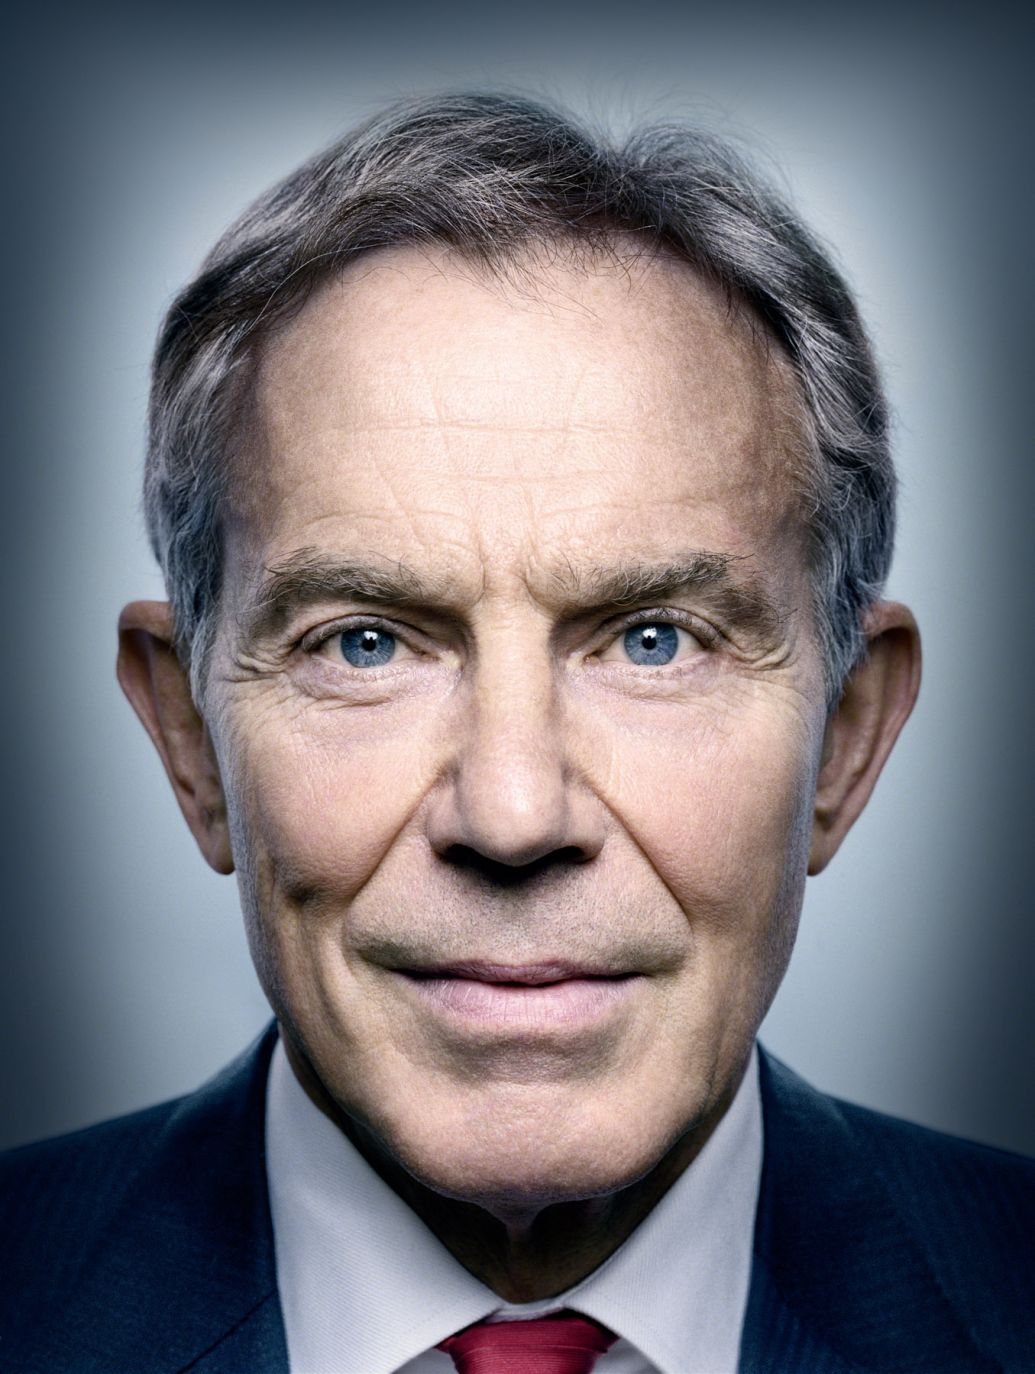 Tony Blair portrair photography